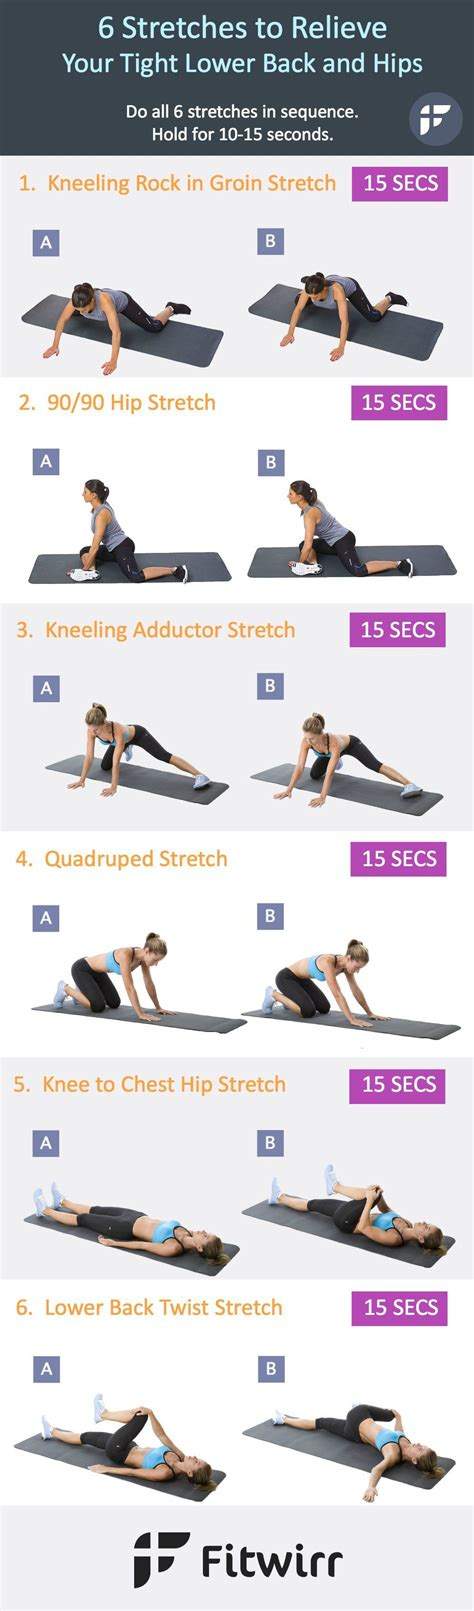 best stretches for lower back tightness stretches before running